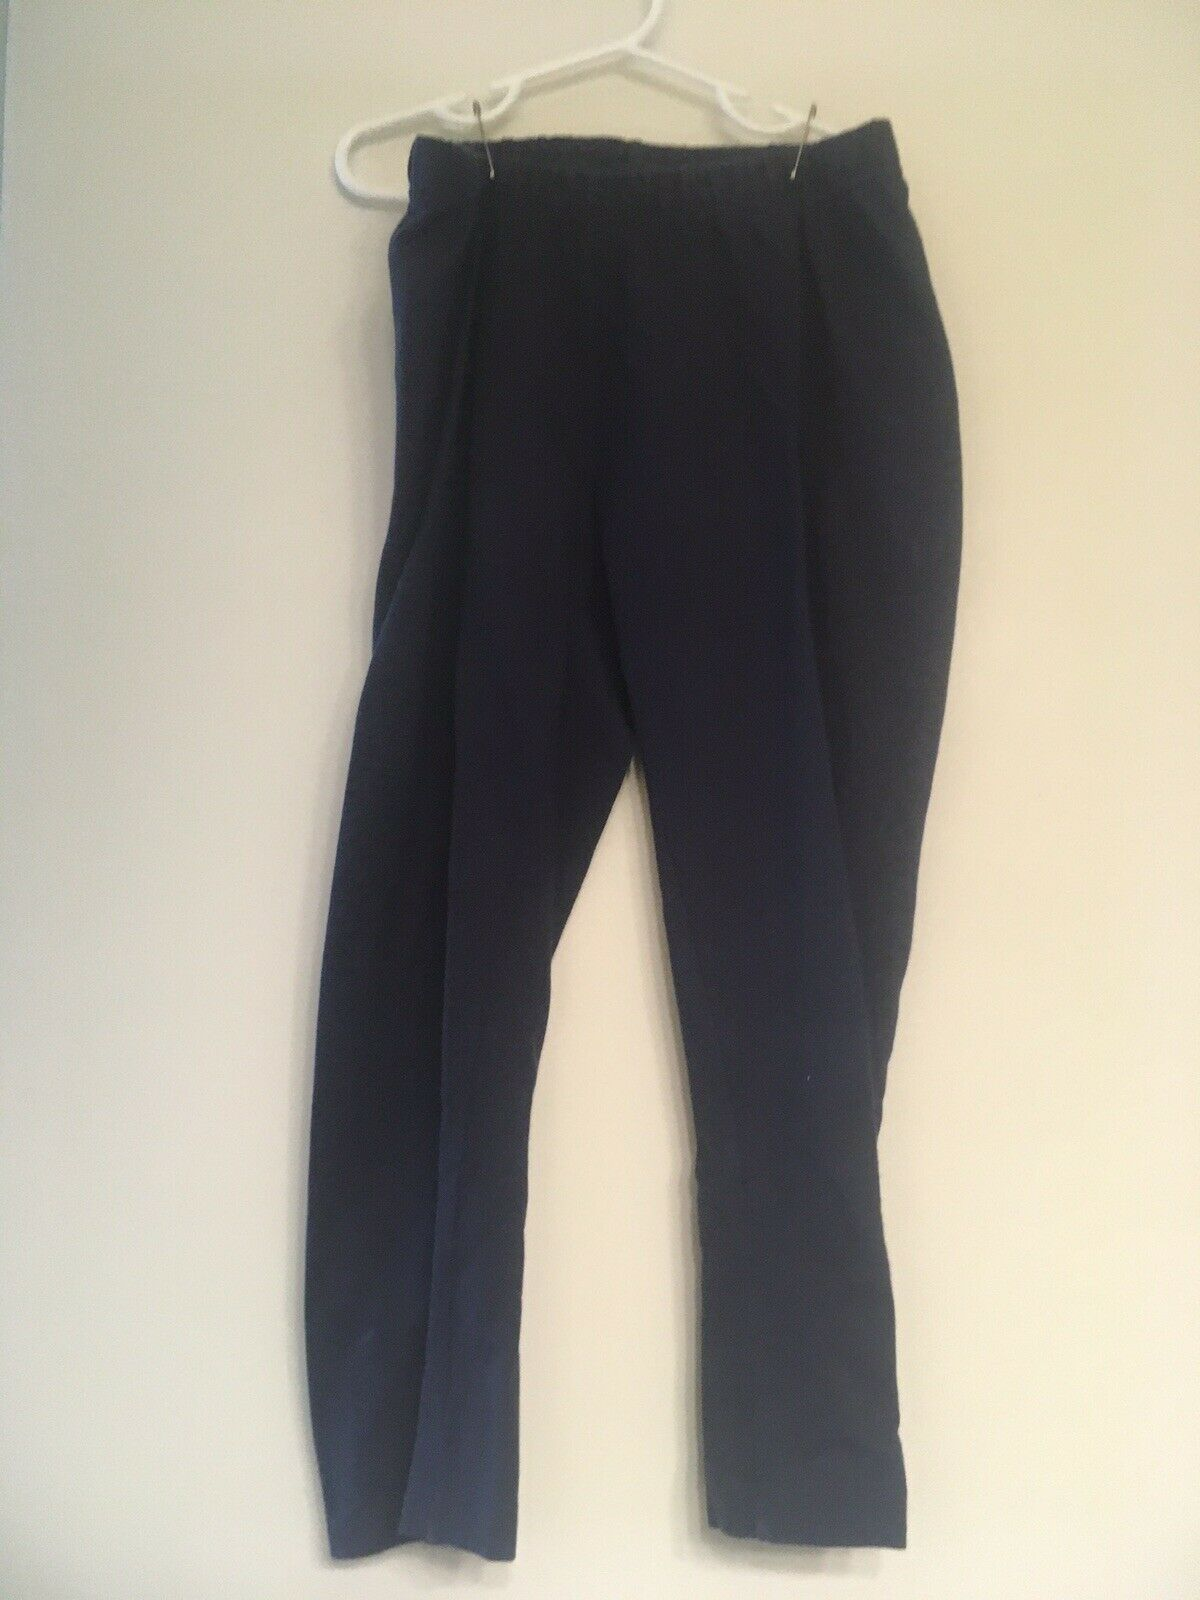 Primary image for Hanna Andersson girls capri leggings size 160 (14) Dark Navy Blue Cropped Cotton